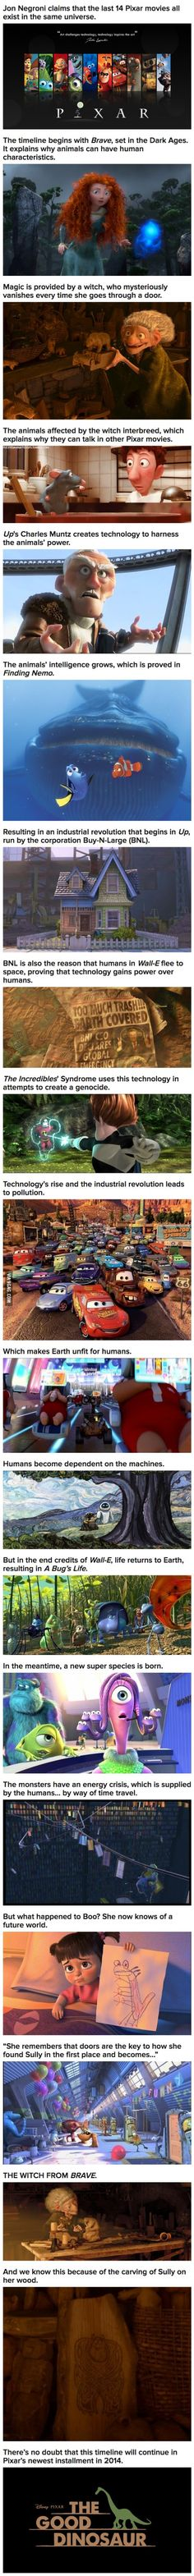 Pixar the answer. Aww I always wanted to know what happened to boo :)